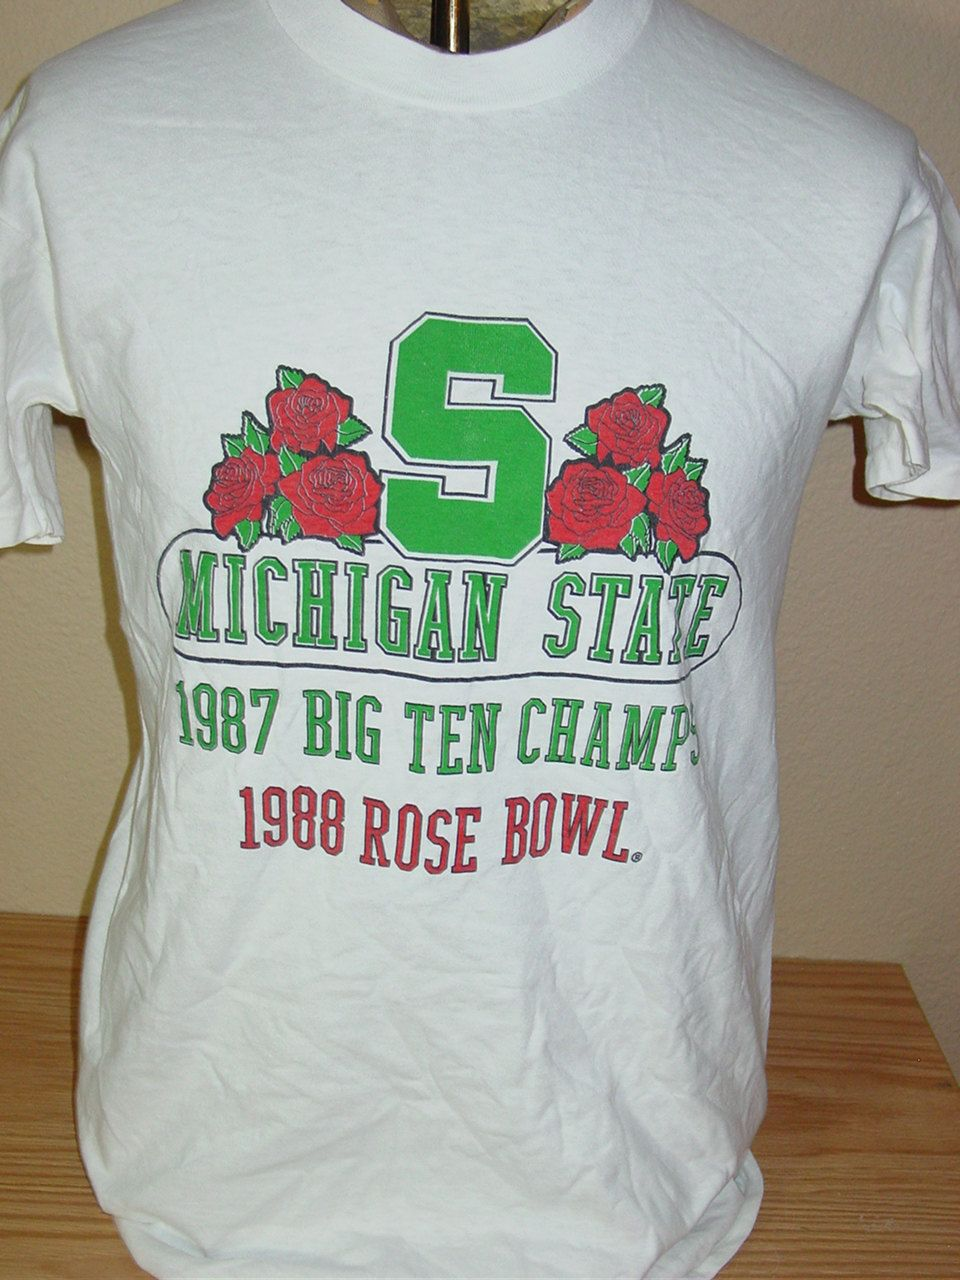 ee79f8e72f6 vintage 1988 Michigan State Spartans Rose Bowl football t shirt Large by  vintagerhino247 on Etsy